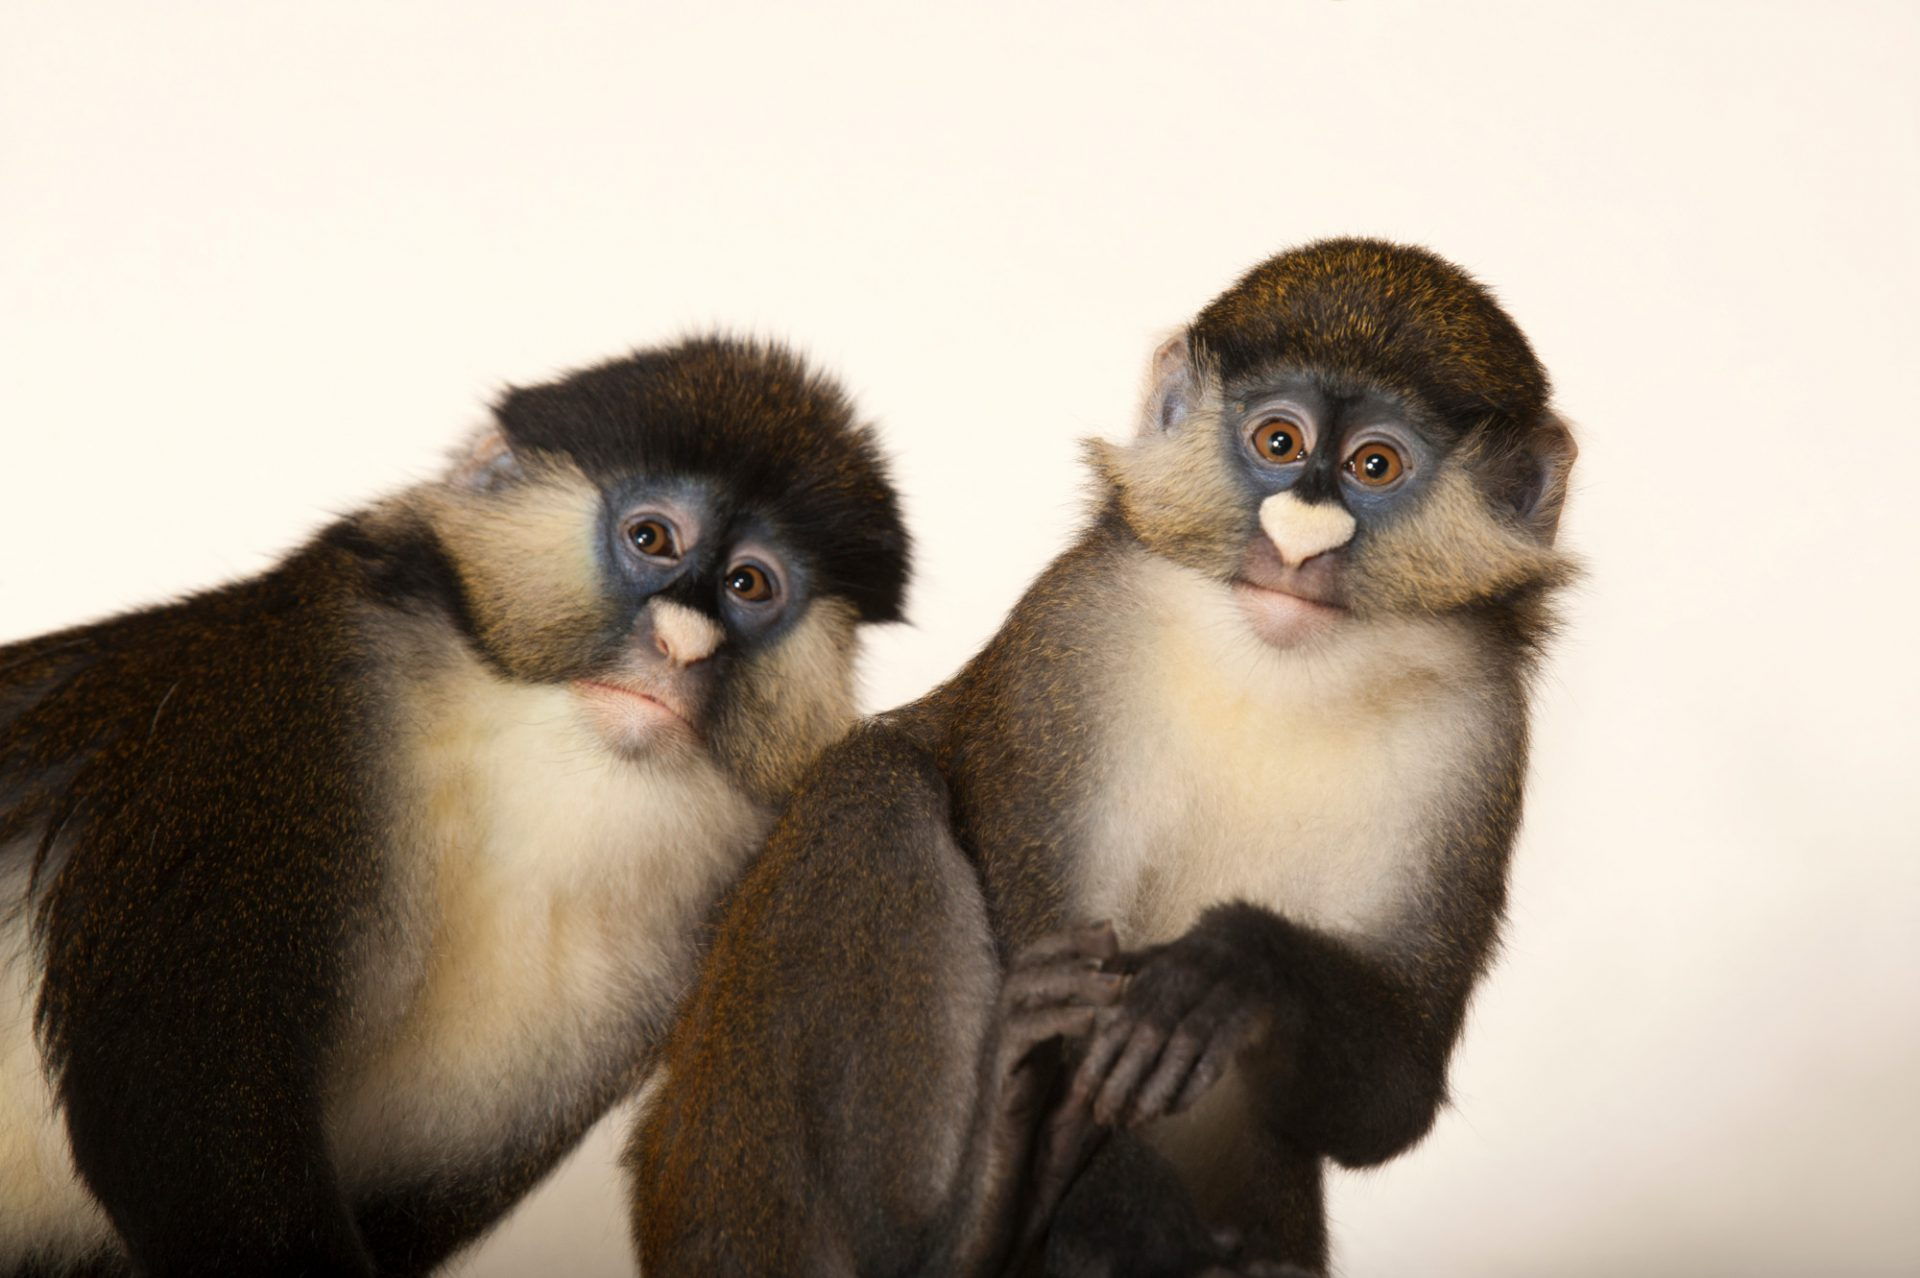 A pair of Schmidt's red-tailed guenons (Cercopithecus ascanius schmidti) at the Houston Zoo.